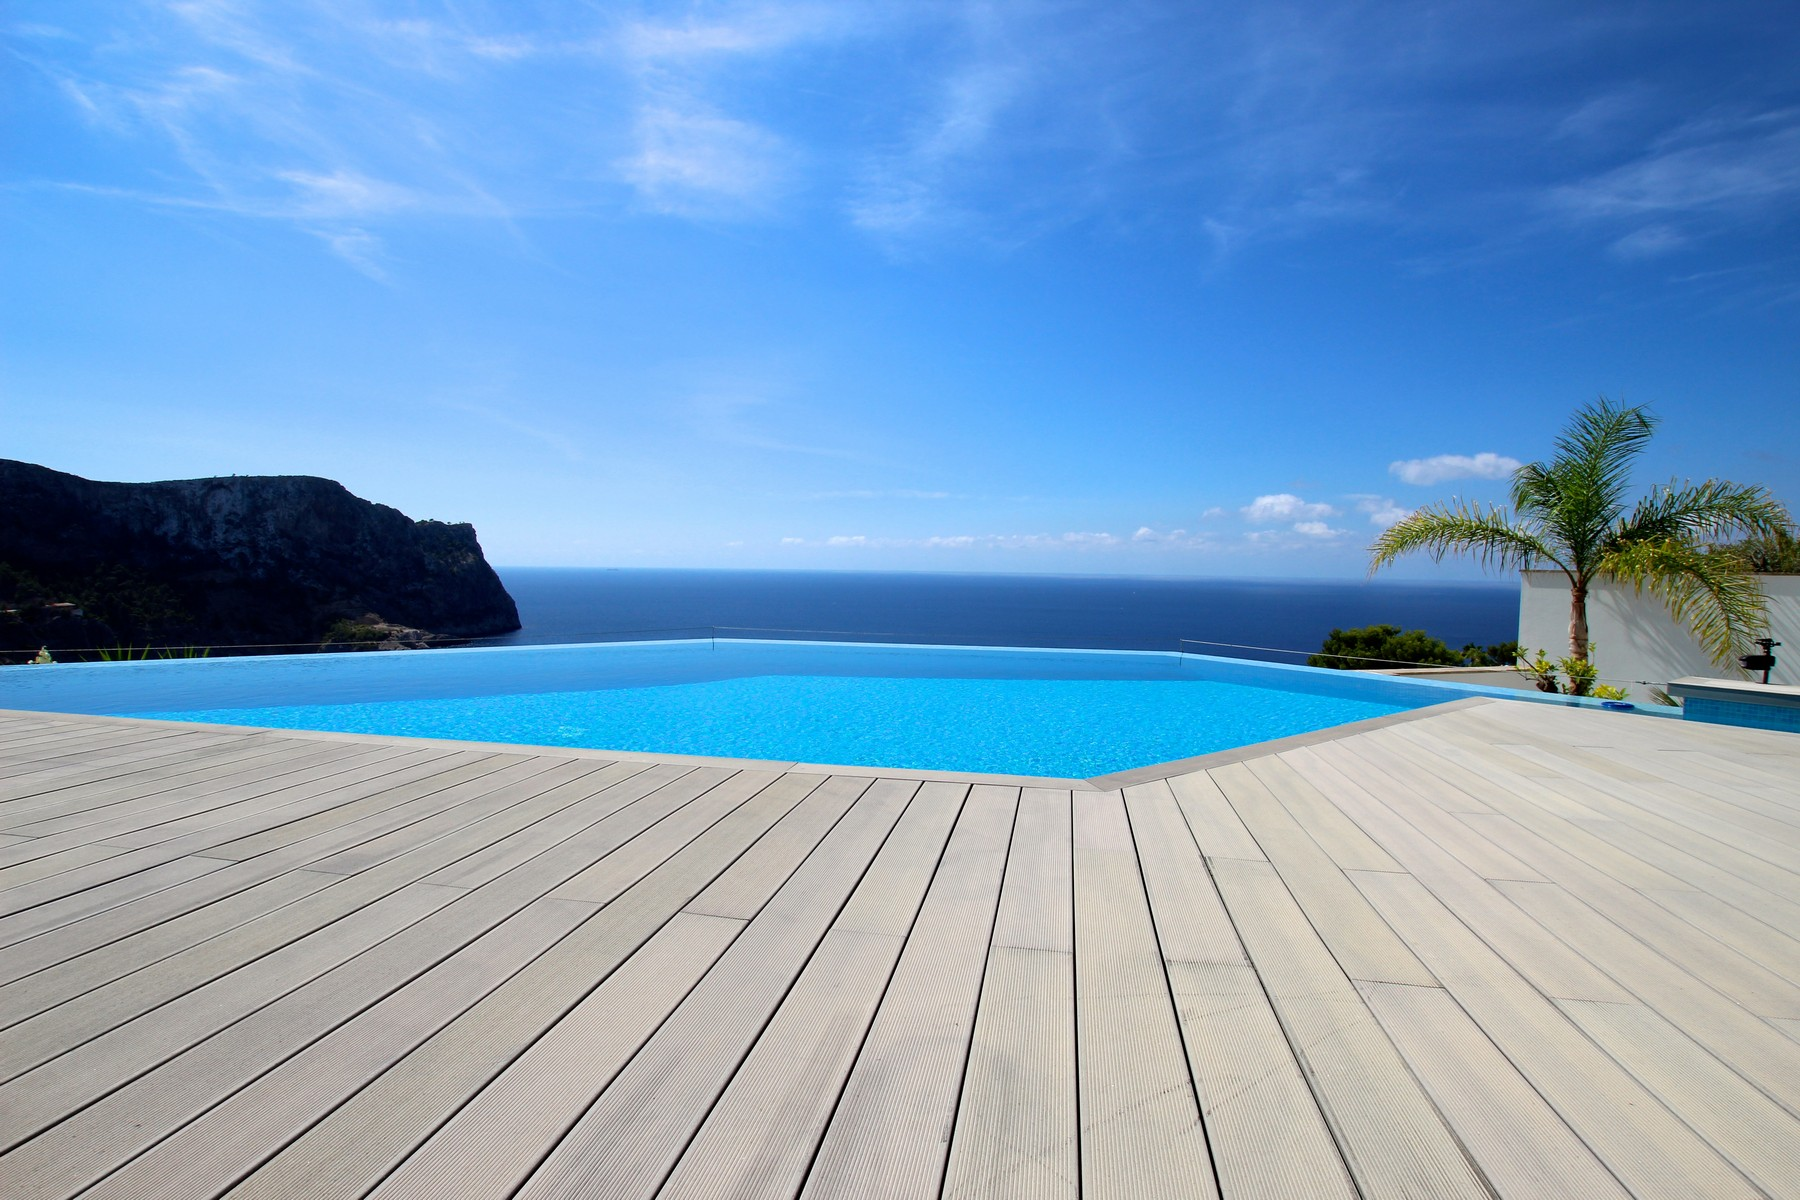 Casa Unifamiliar por un Venta en Villa with breathtaking views in Port Andratx Port Andratx, Mallorca, 07157 España